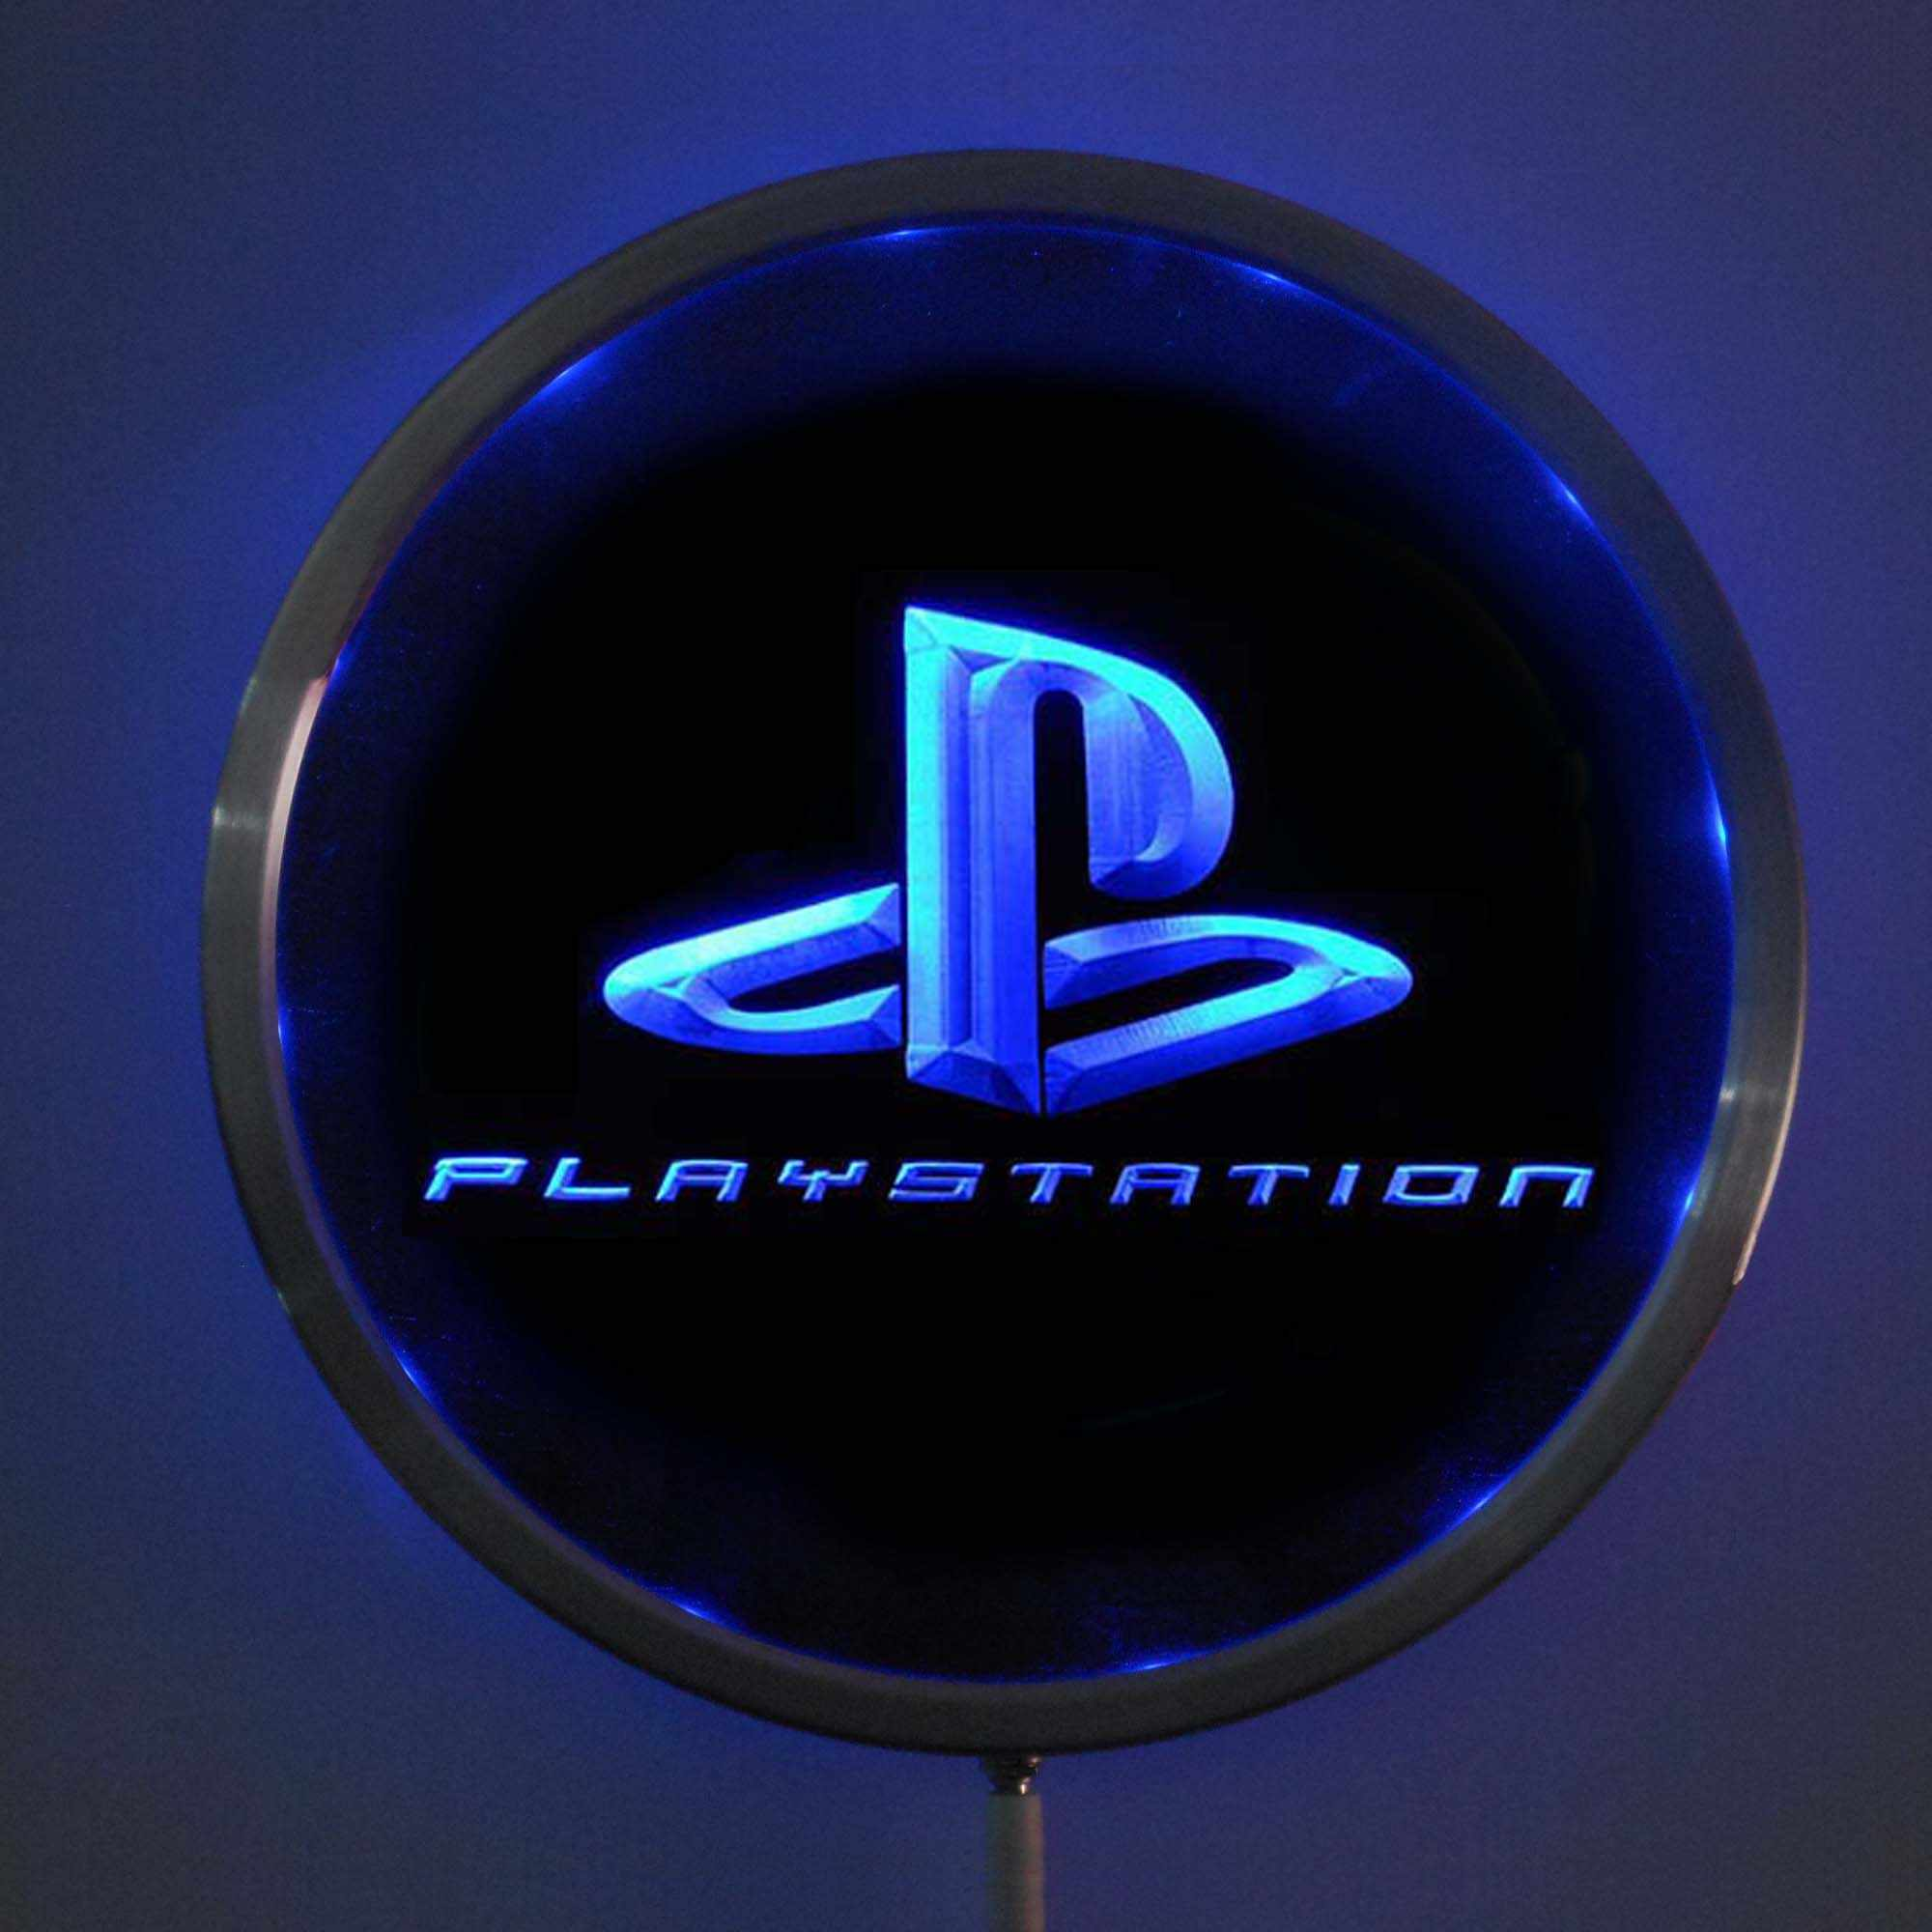 rs-e0175 PS Playstation Game LED Neon Light Round Signss 25cm/ 10 Inch - Bar Signs with RGB Multi-Color Remote Wireless Control